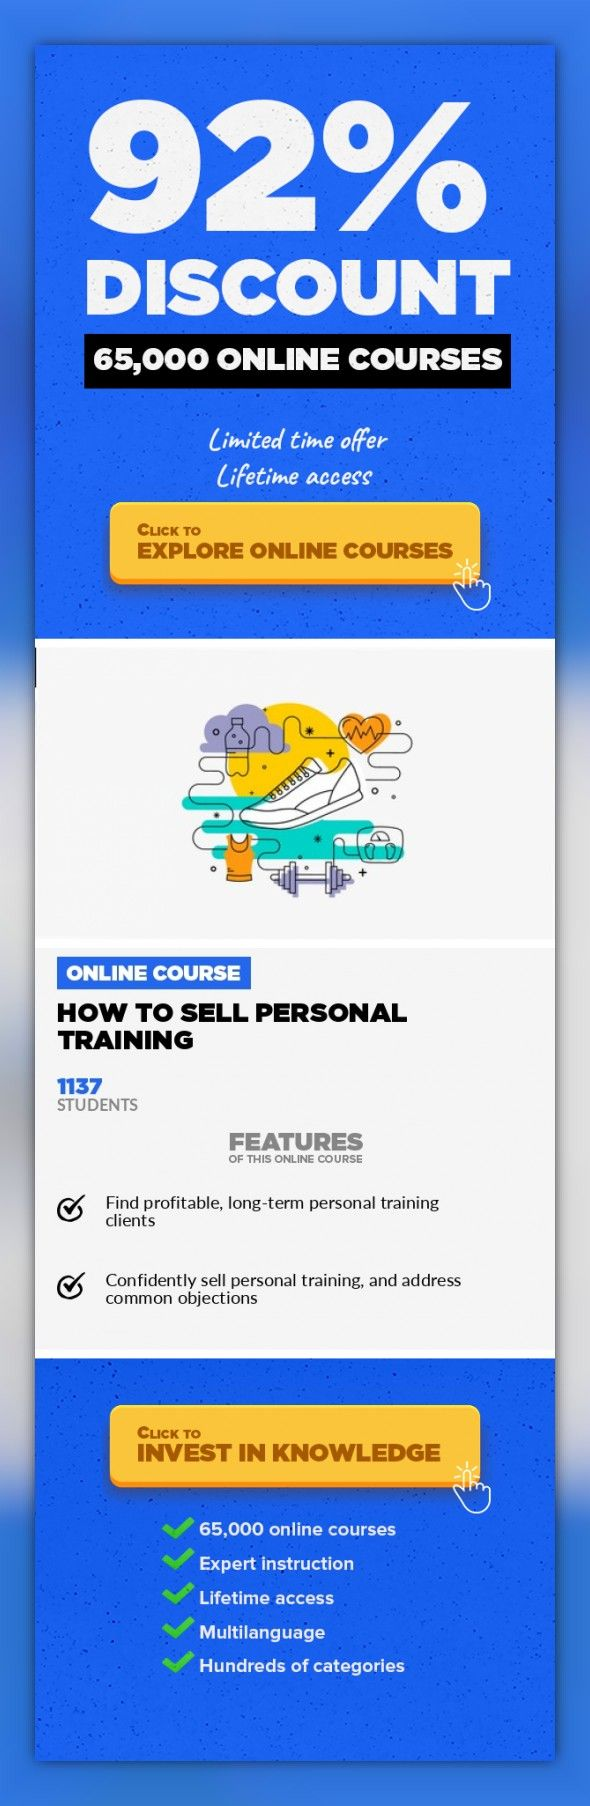 How To Get More Clients Personal Training Business Best More 2017